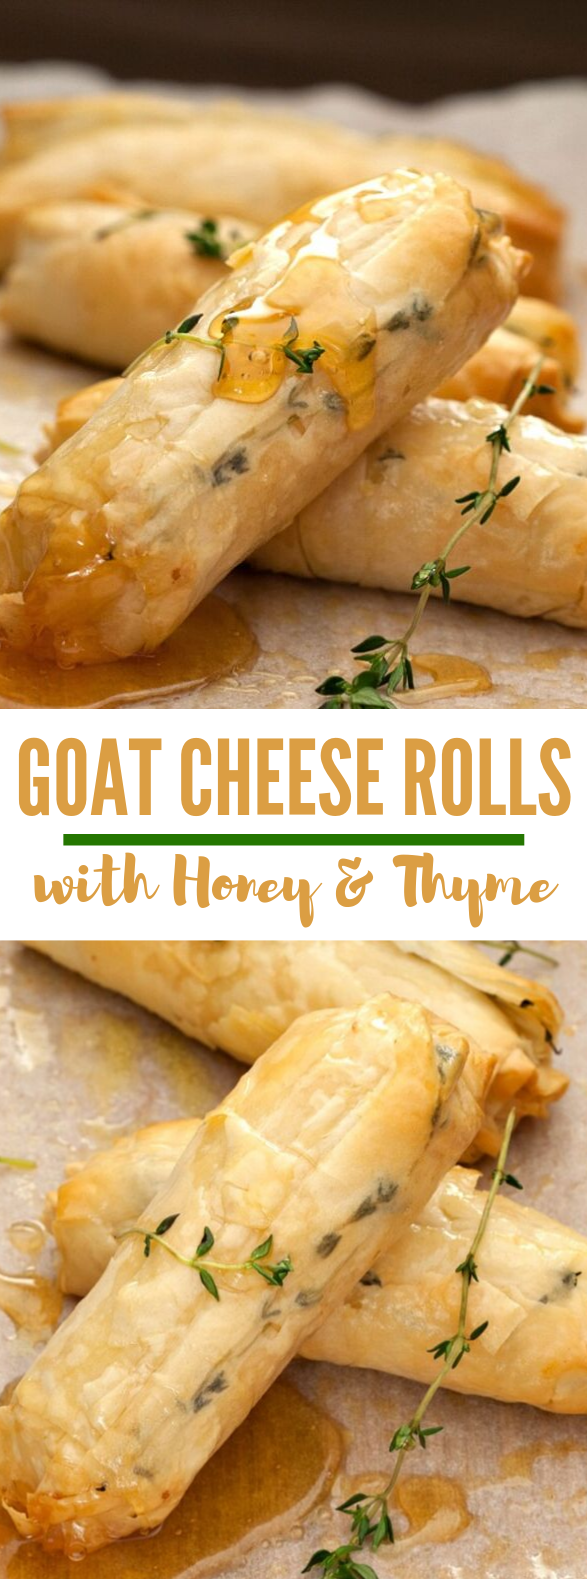 BAKED GOATS CHEESE ROLLS WITH HONEY AND THYME #dinner #appetizers